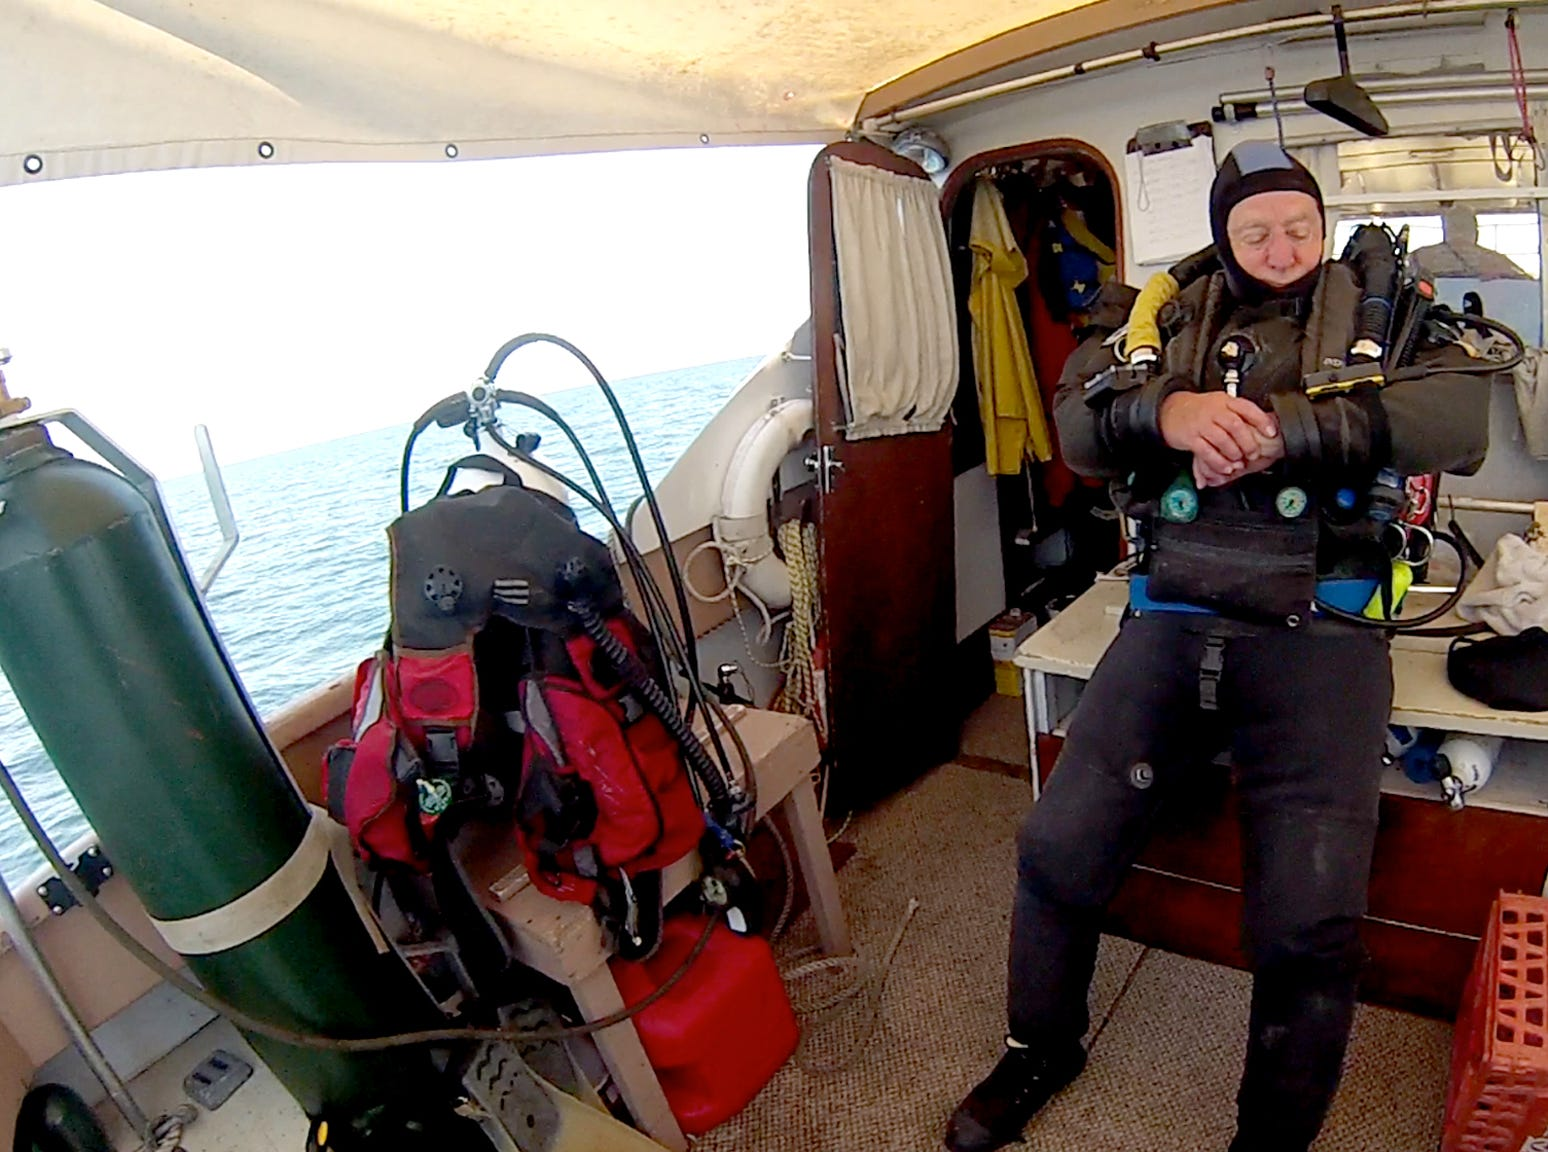 Technical diver Ken Merryman prepares his rebreather equipment for a deep dive. He and Cris Kohl became the first divers to visit the wreck of the J.H. Jones.